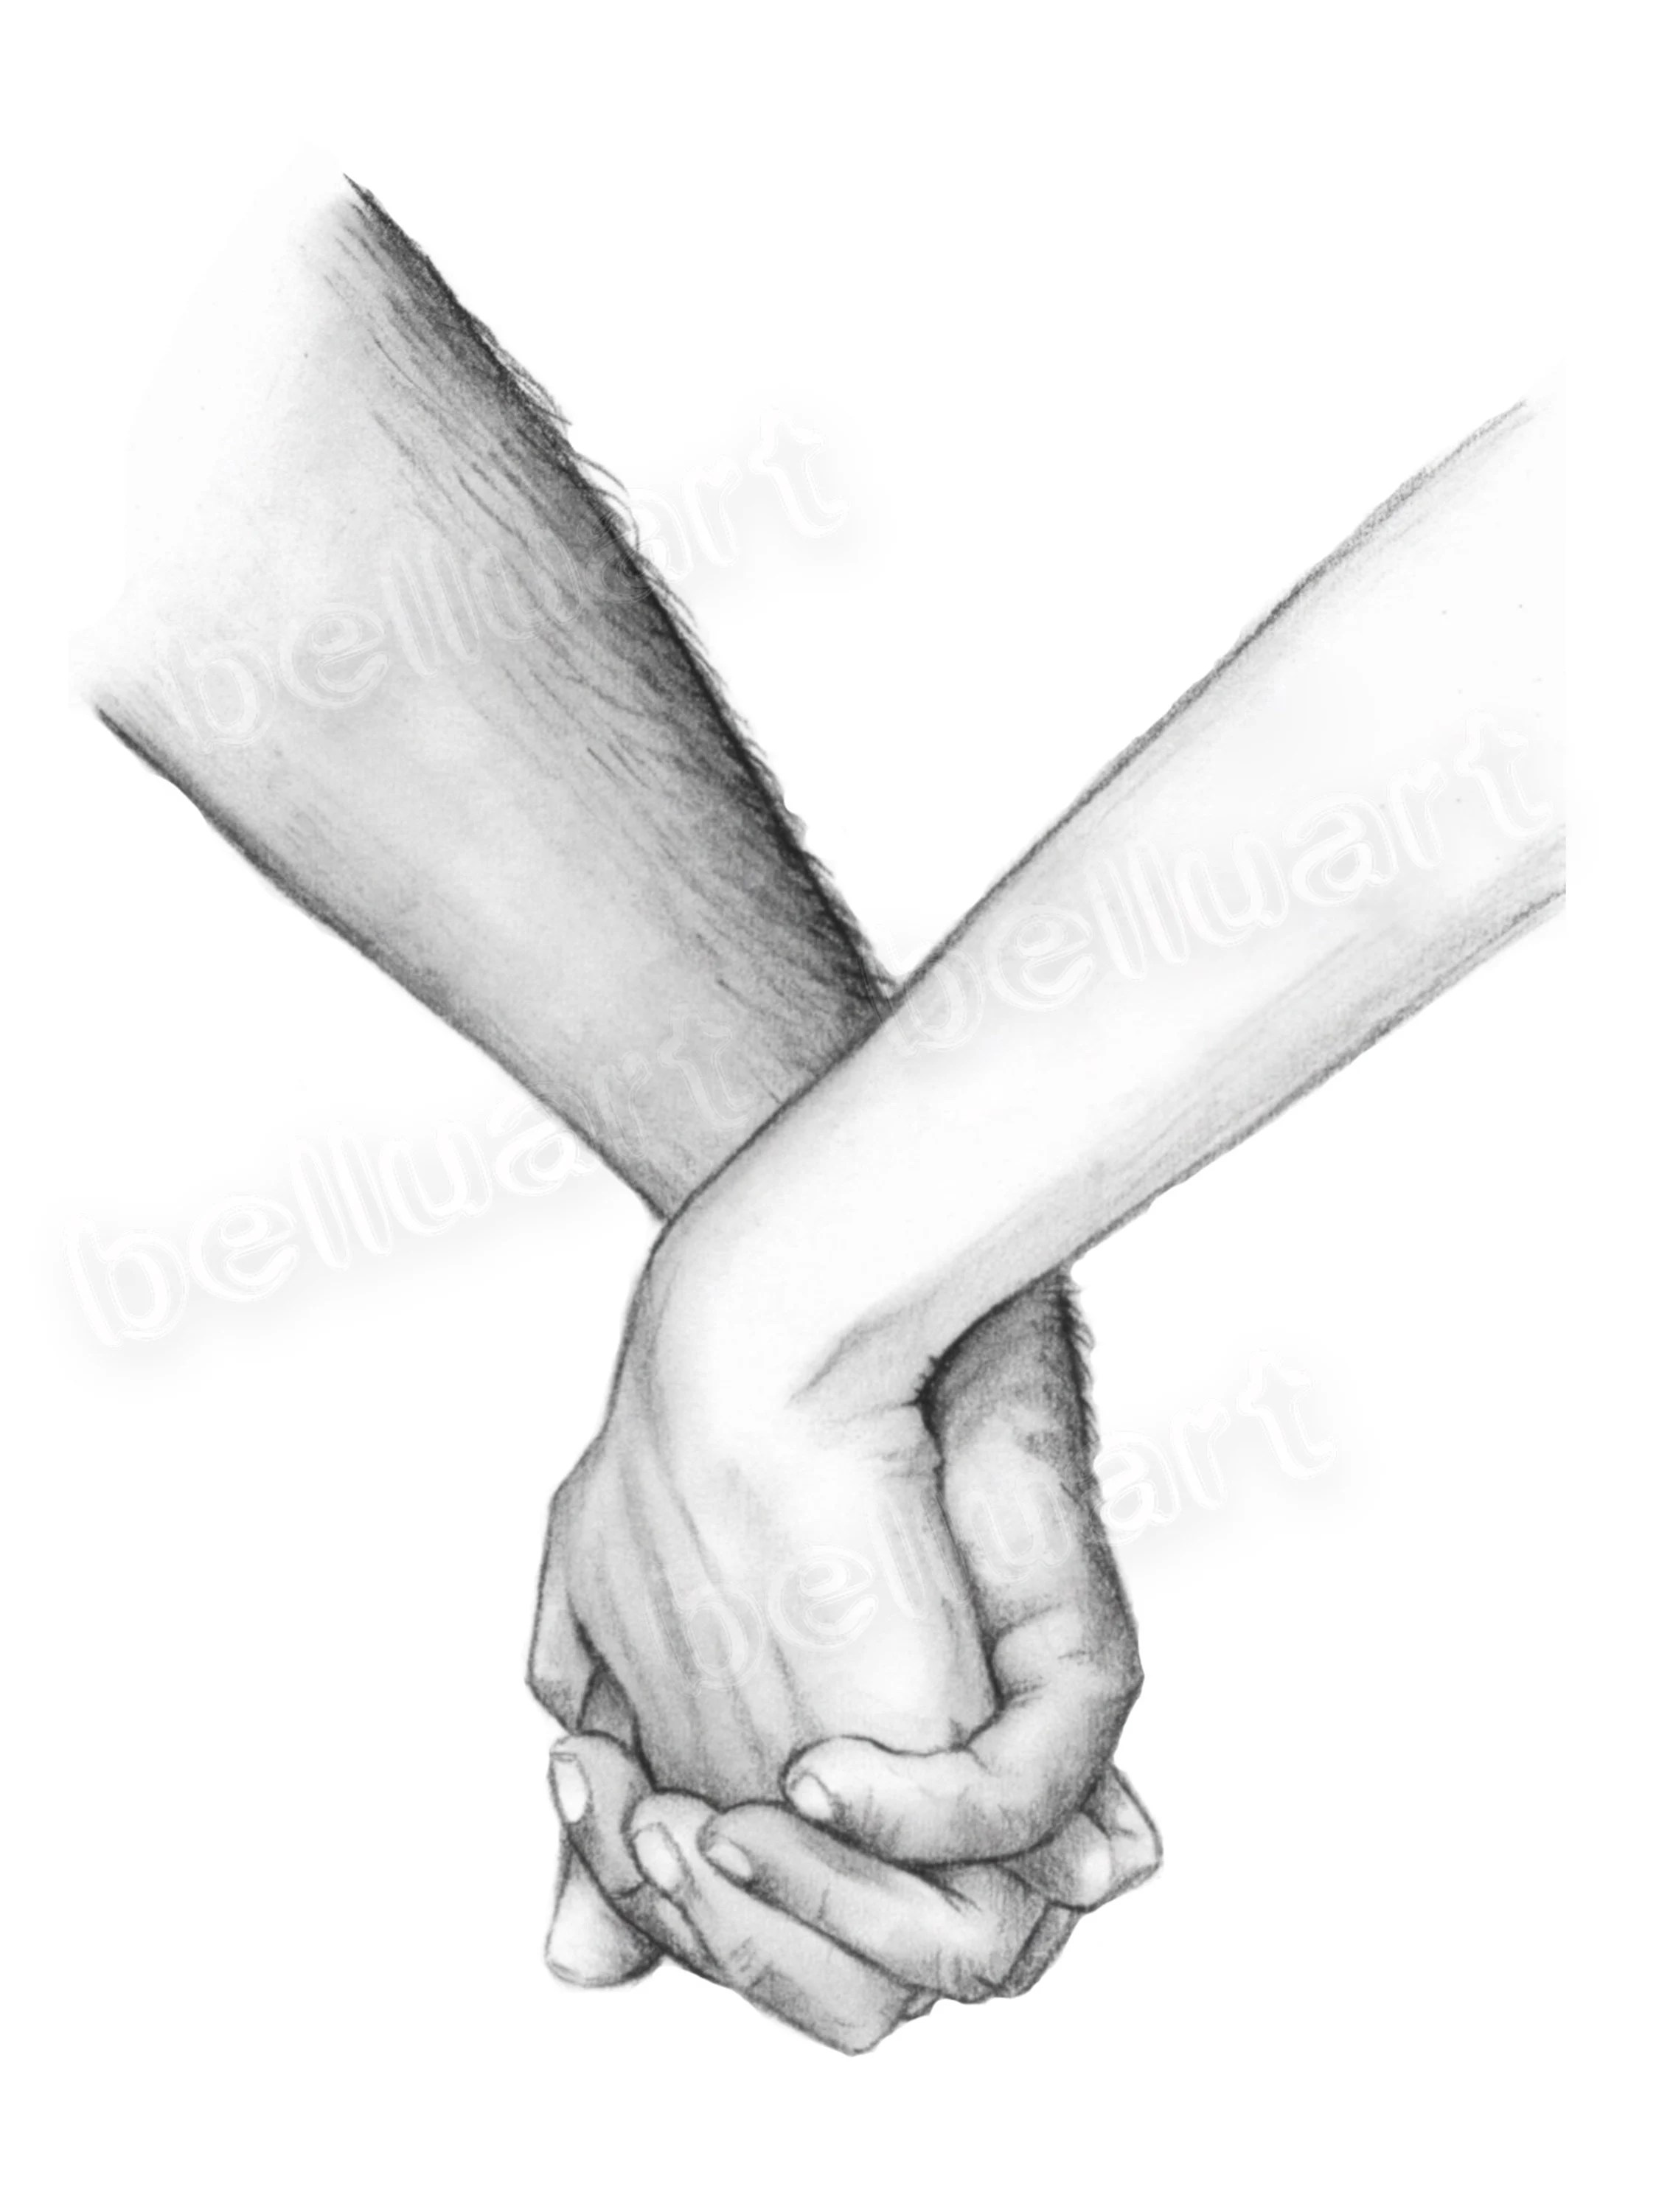 Drawing Holding Hands : drawing, holding, hands, Print, Holding, Hands, Sketches, Pencil